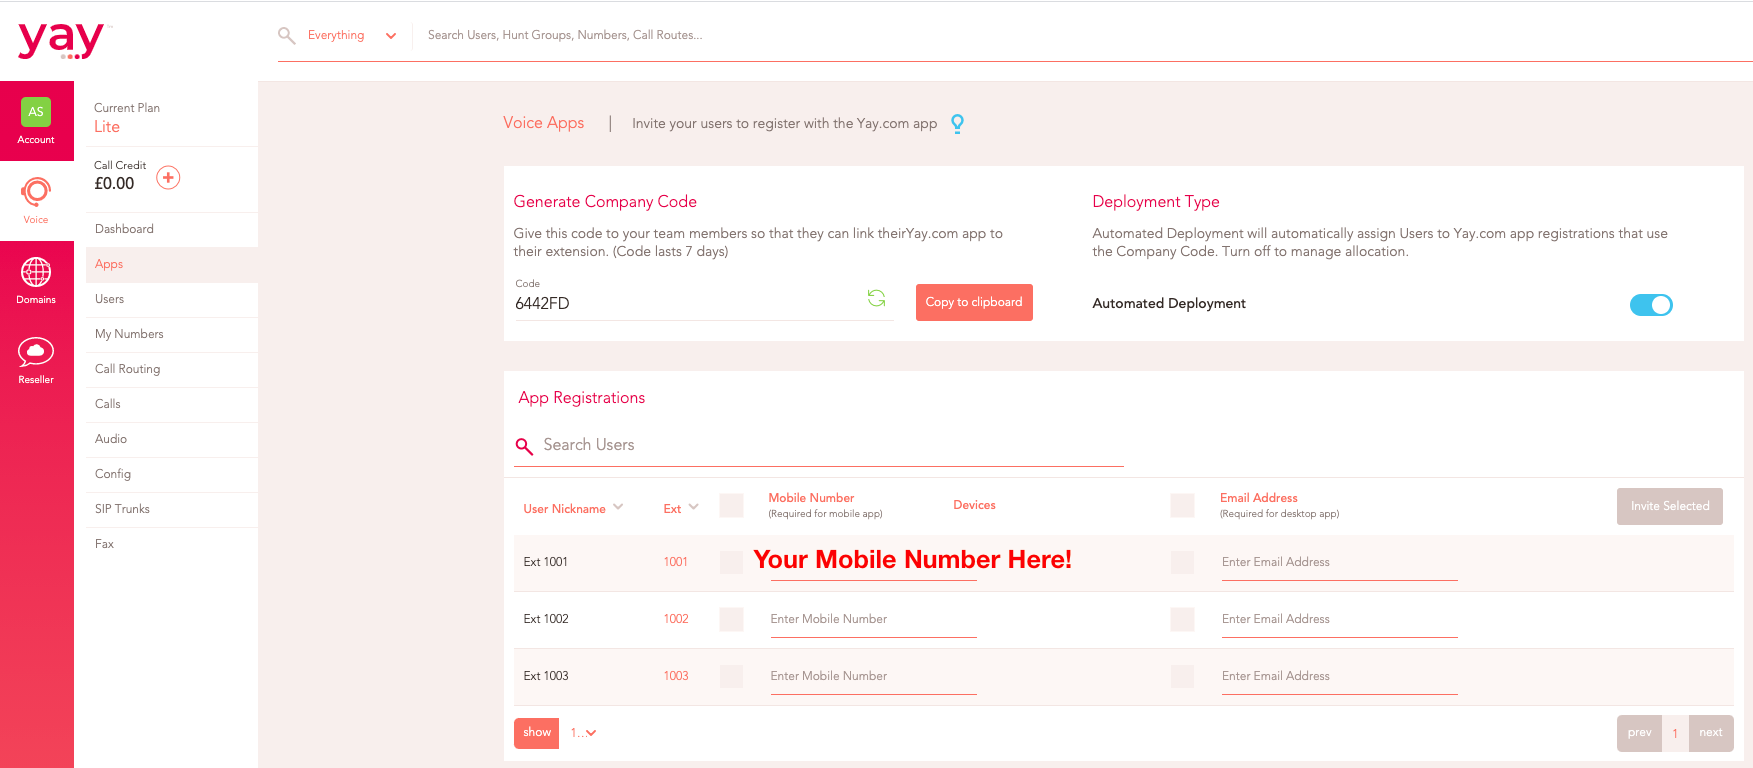 Head to the apps tab to deploy your user to the Yay.com Mobile App.